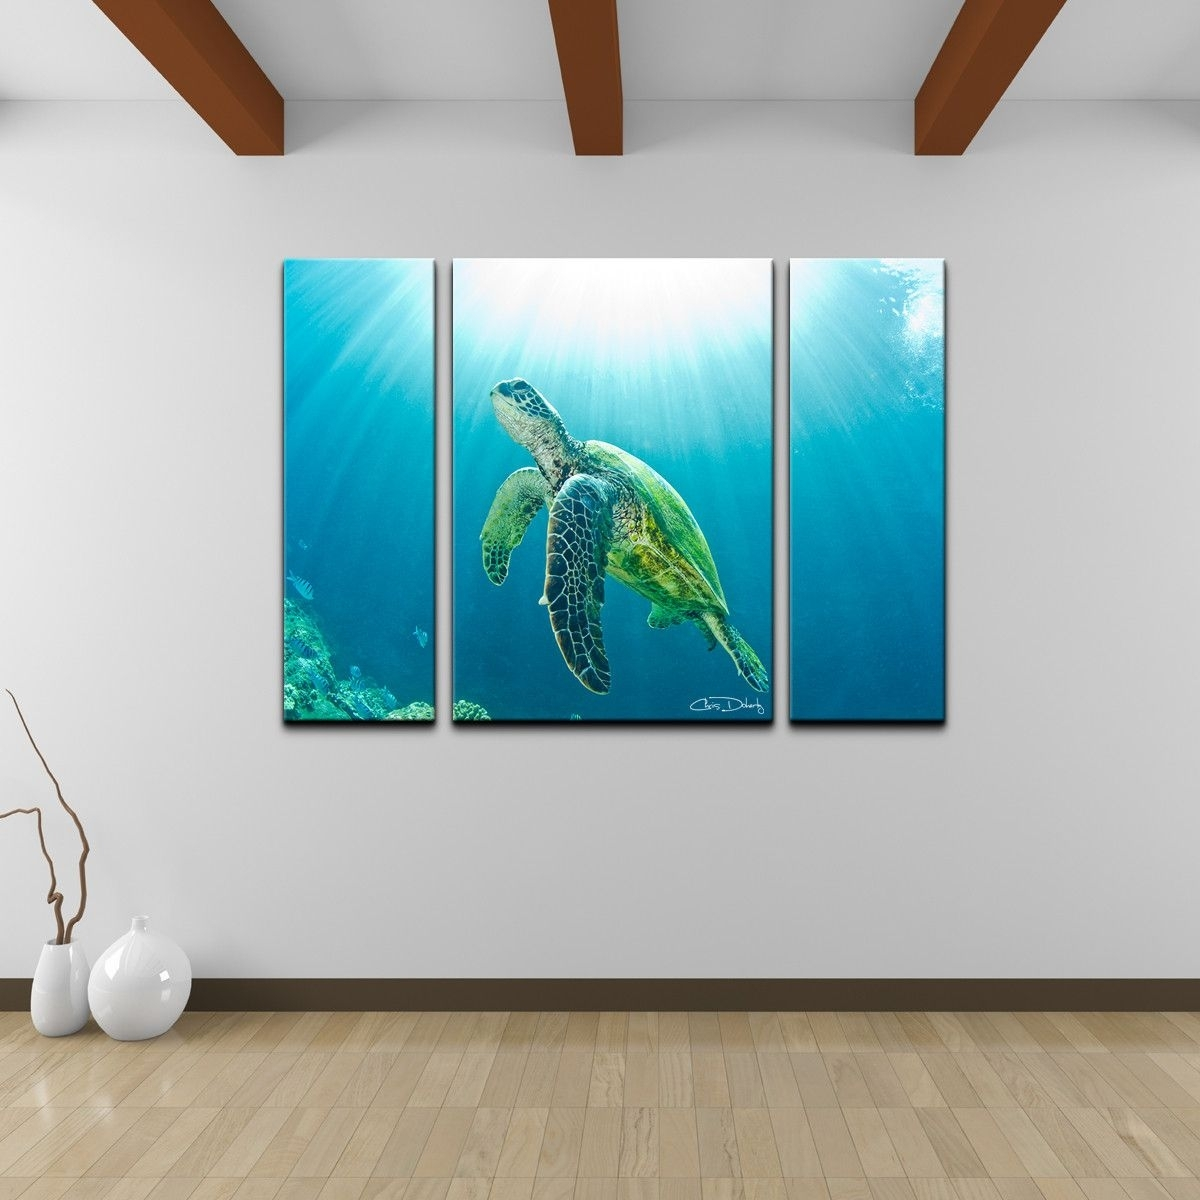 Christopher Doherty 'sea Turtle' Canvas Wall Art (3 Piece) | Turtle Within 2018 Sea Turtle Canvas Wall Art (View 20 of 20)